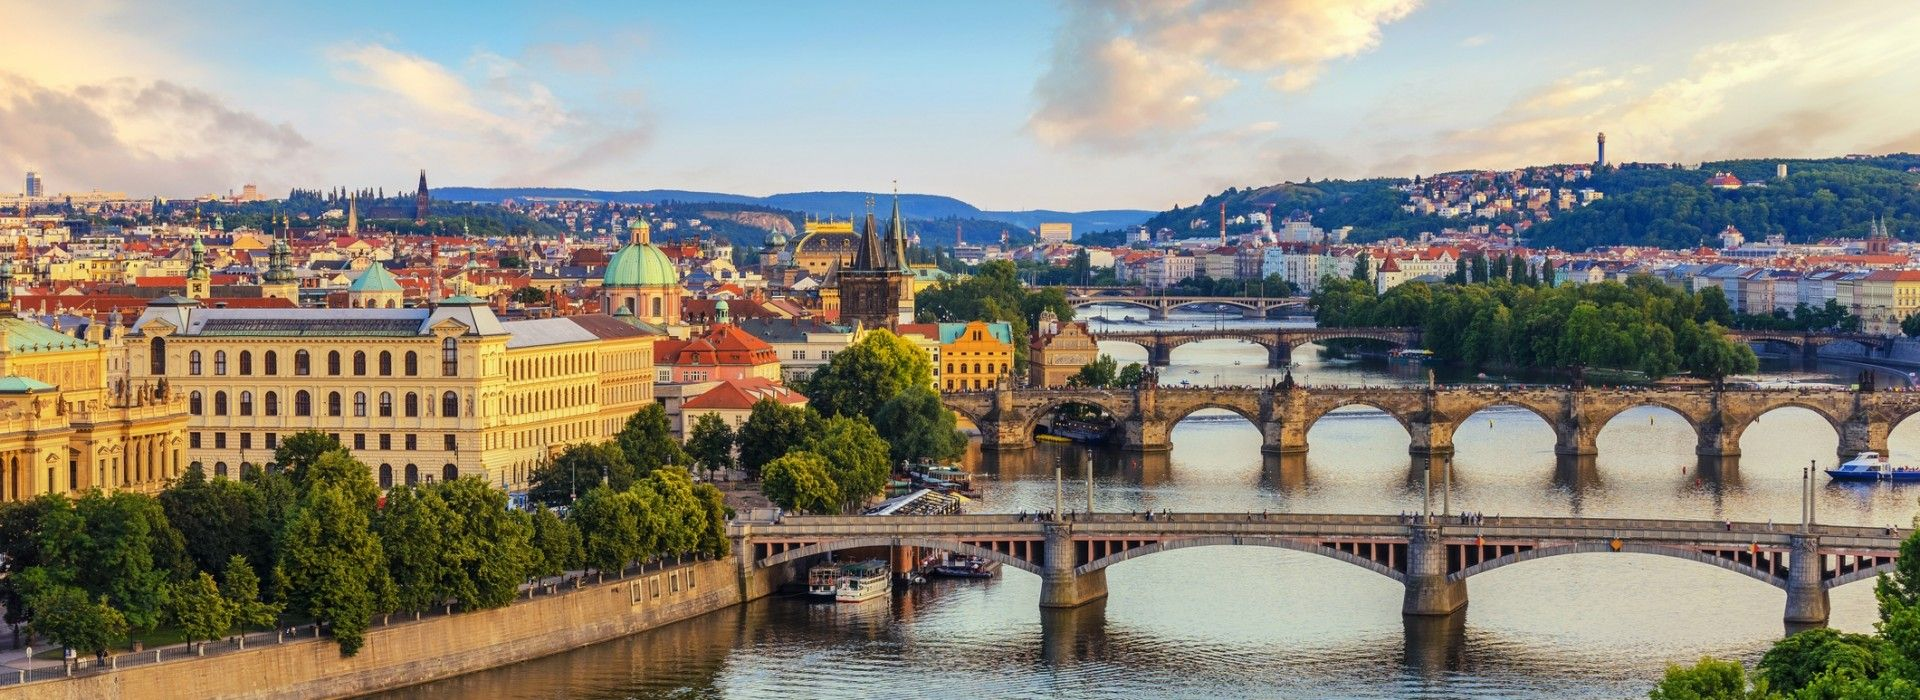 Beach, romance, getaways and relaxation Tours in Prague